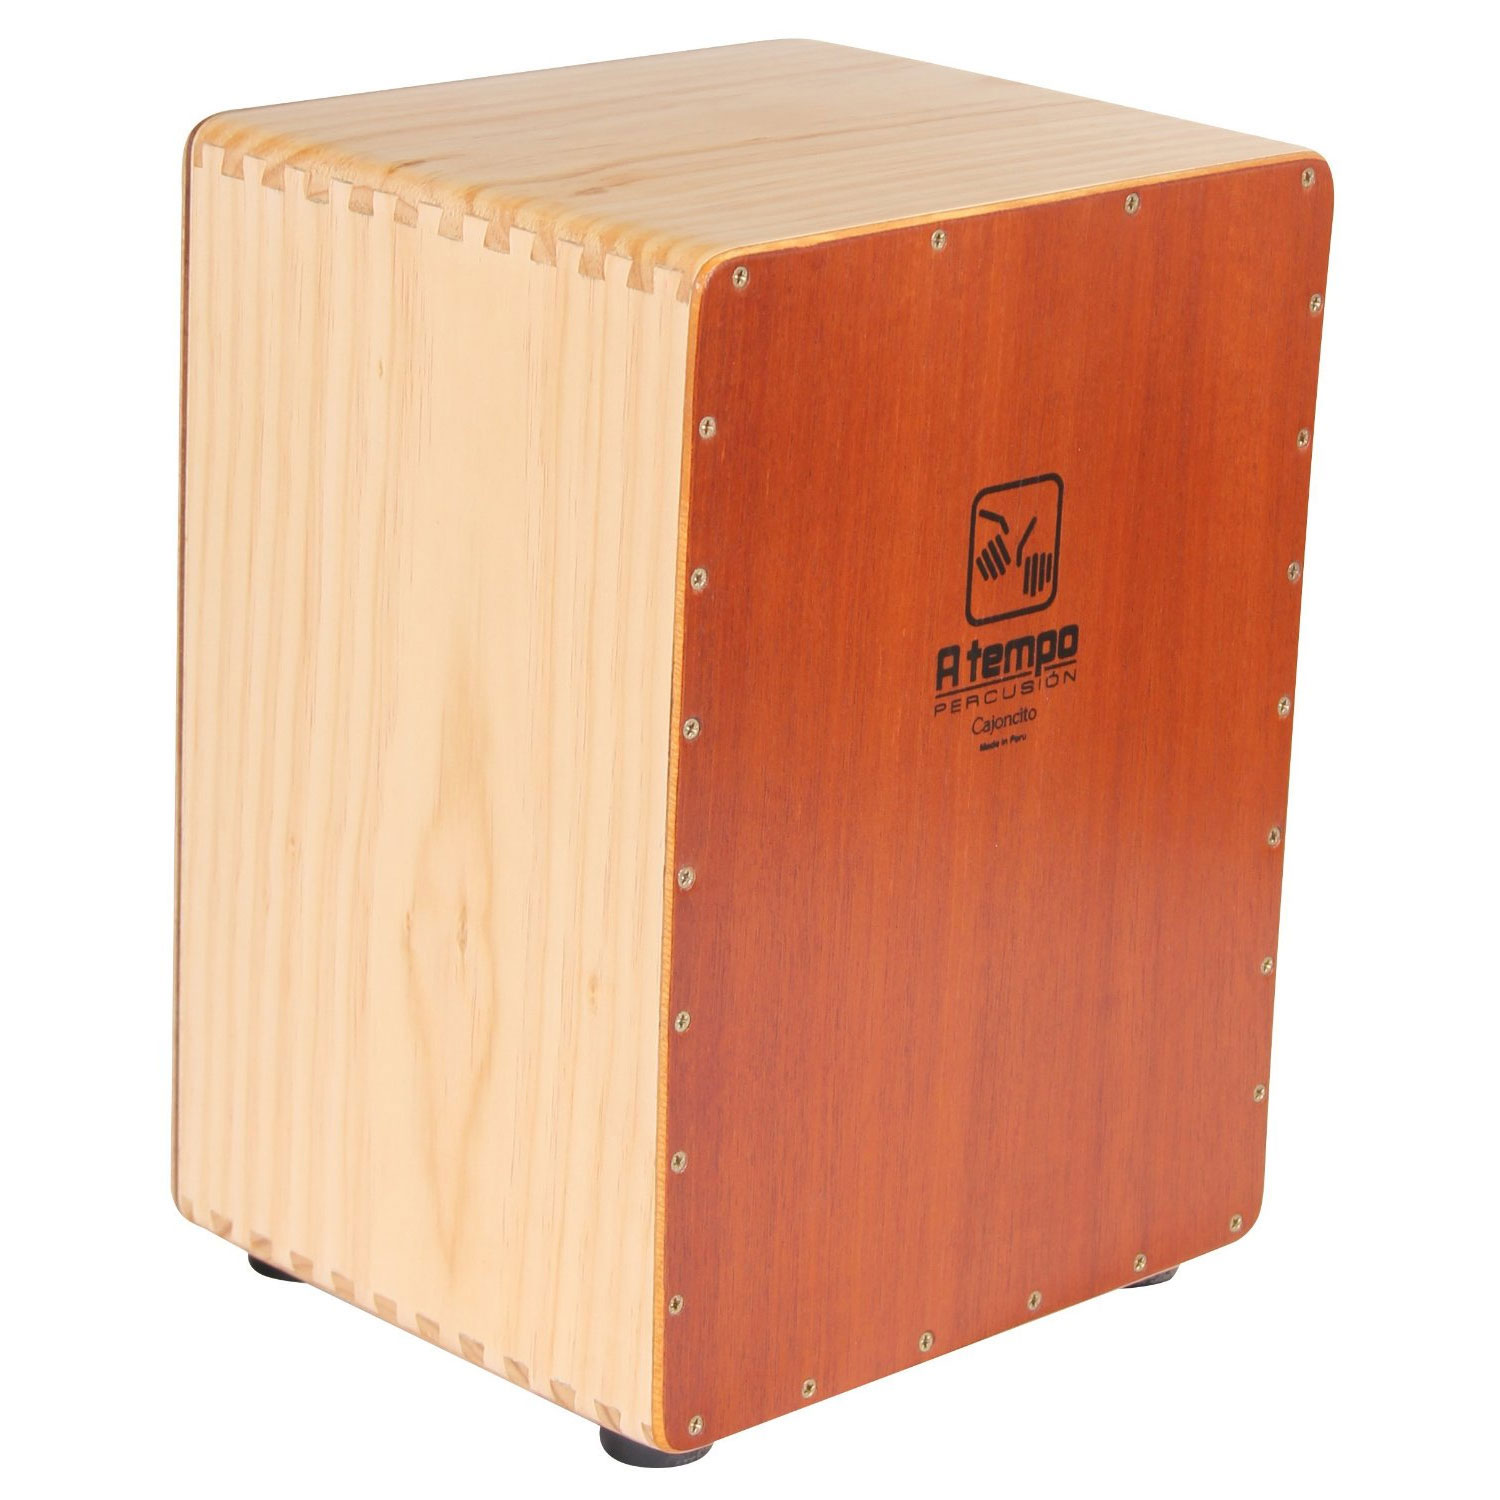 A Tempo Percussion El Cajoncito (The Little Cajon)